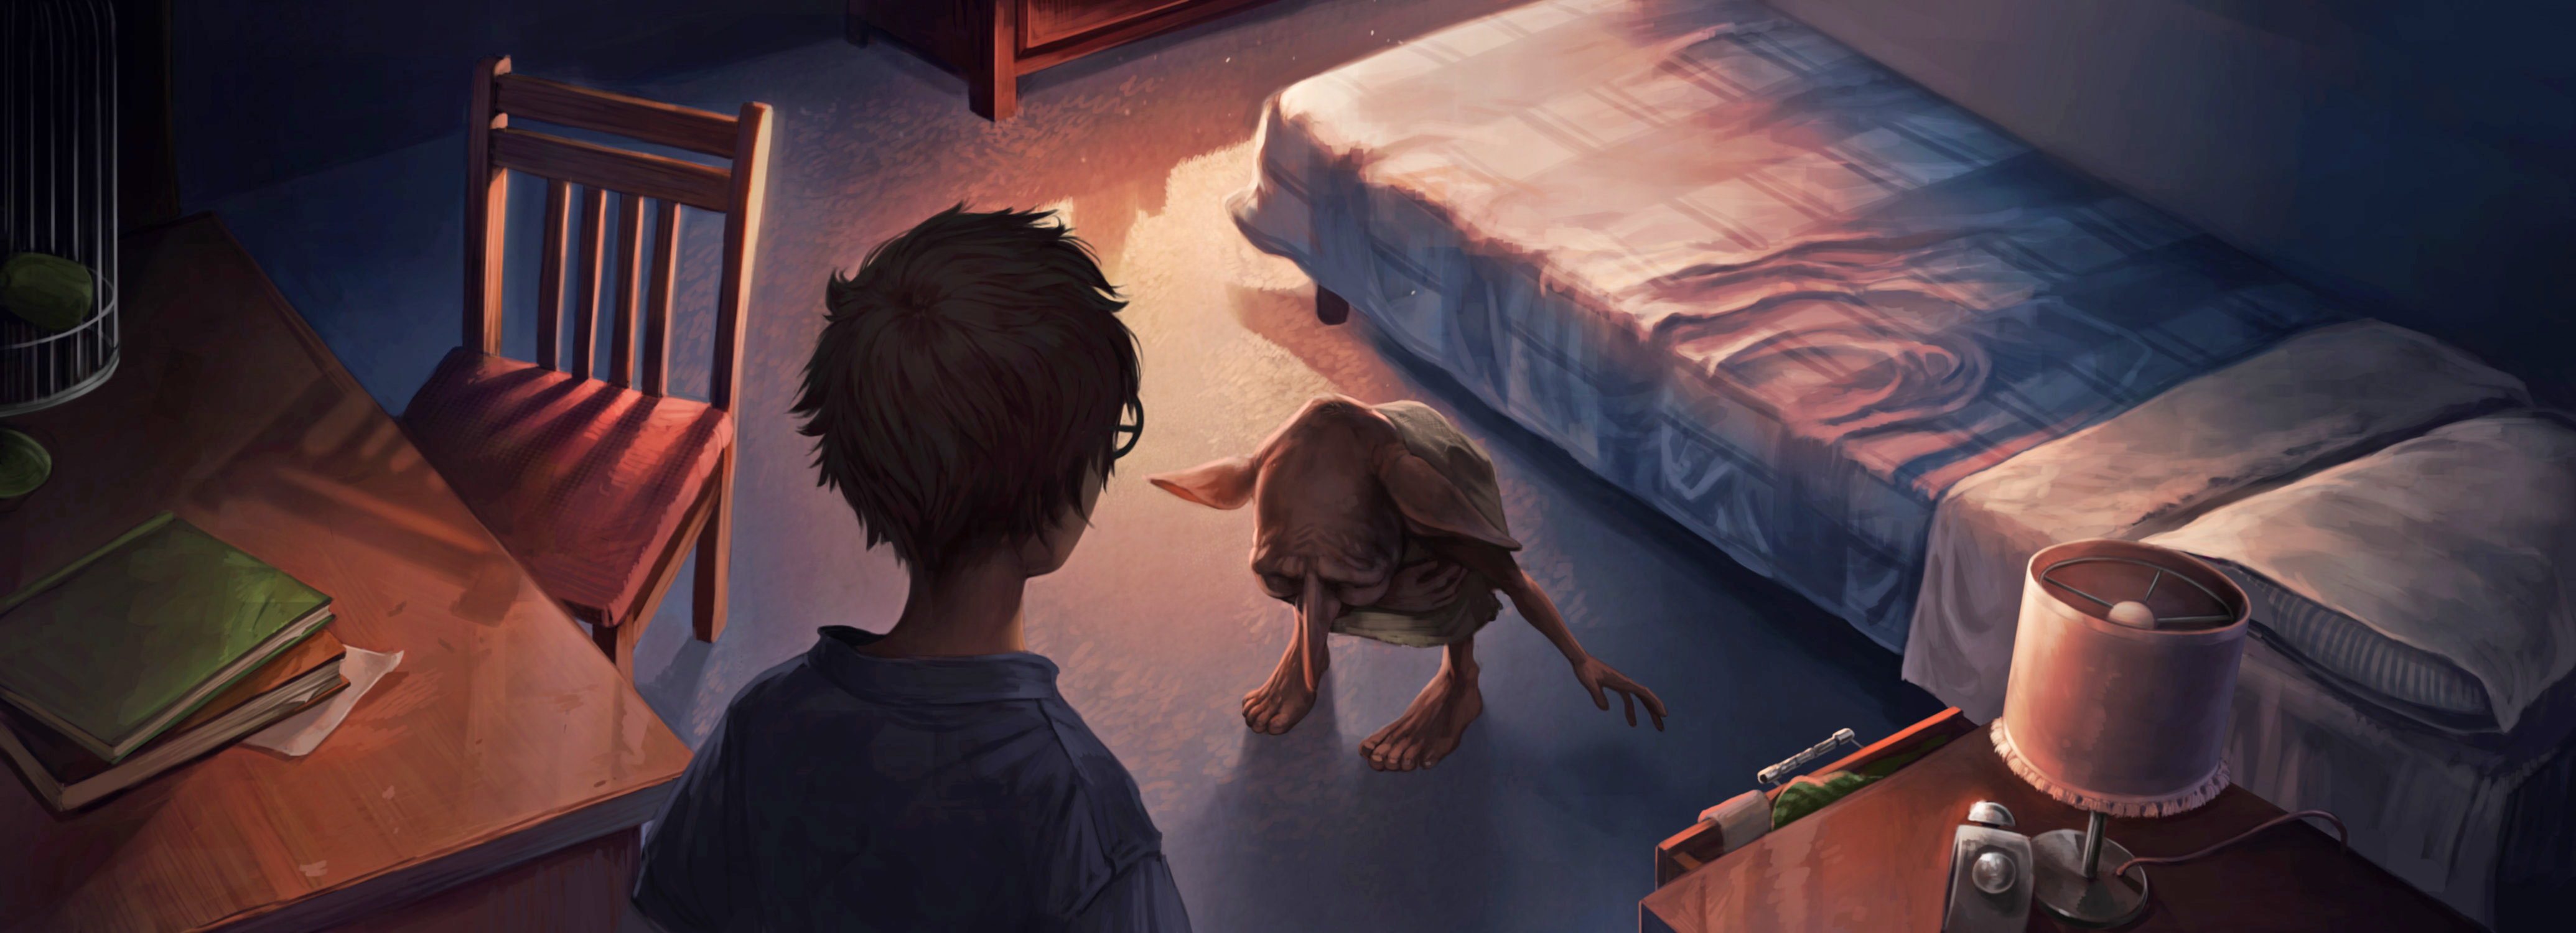 Dobby bows to Harry in his bedroom in Privet Drive